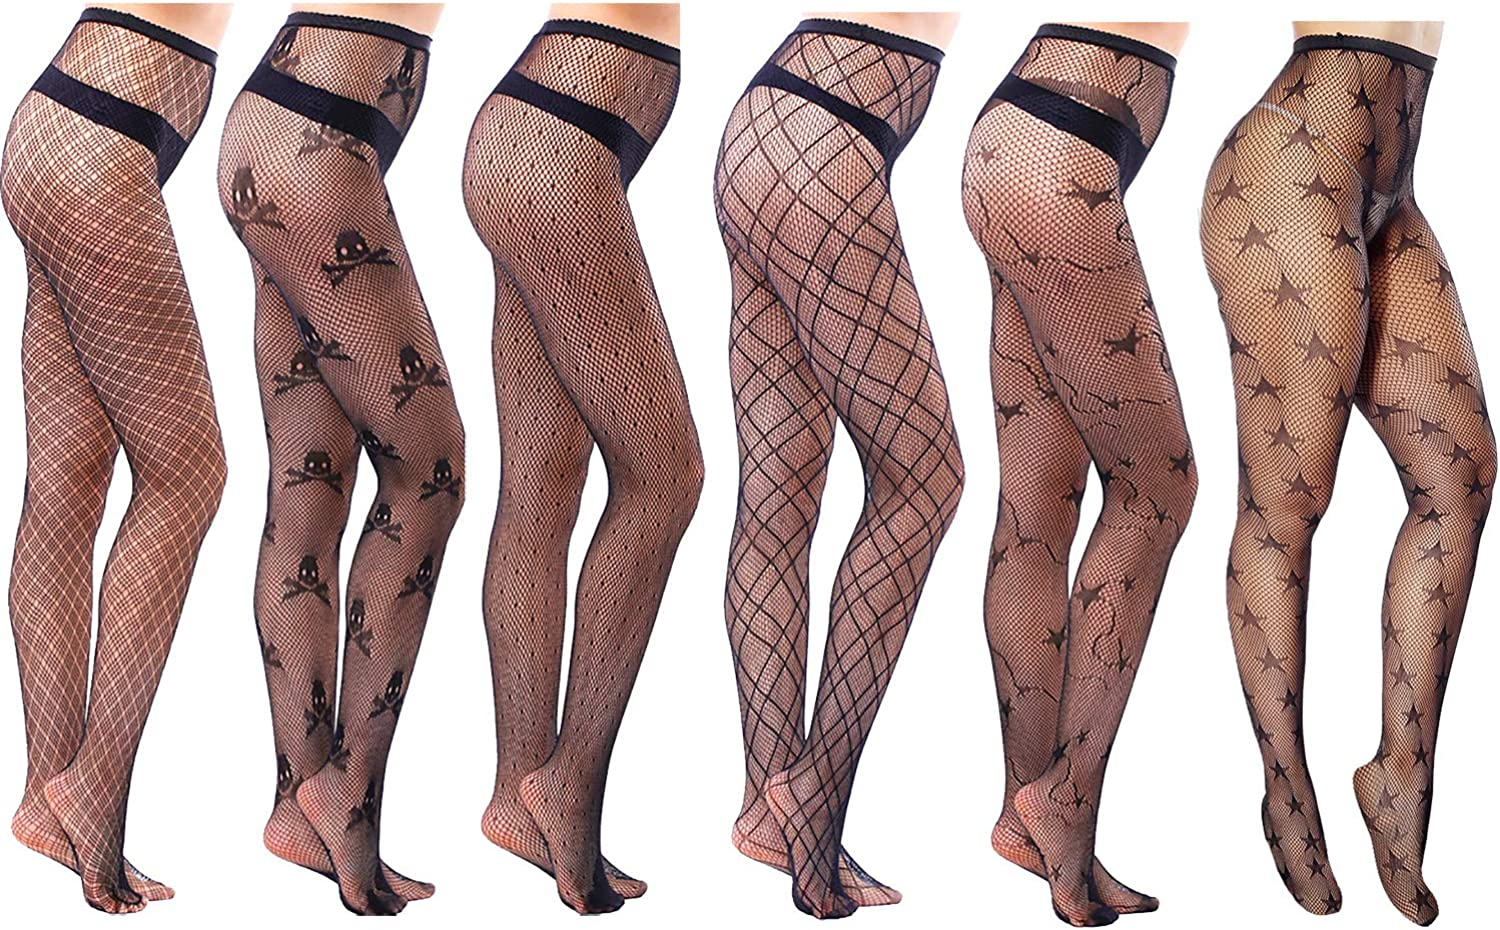 Jusback Lace Pantyhose Floral Stockings 6 Pairs Black Fishnet Tight for Women